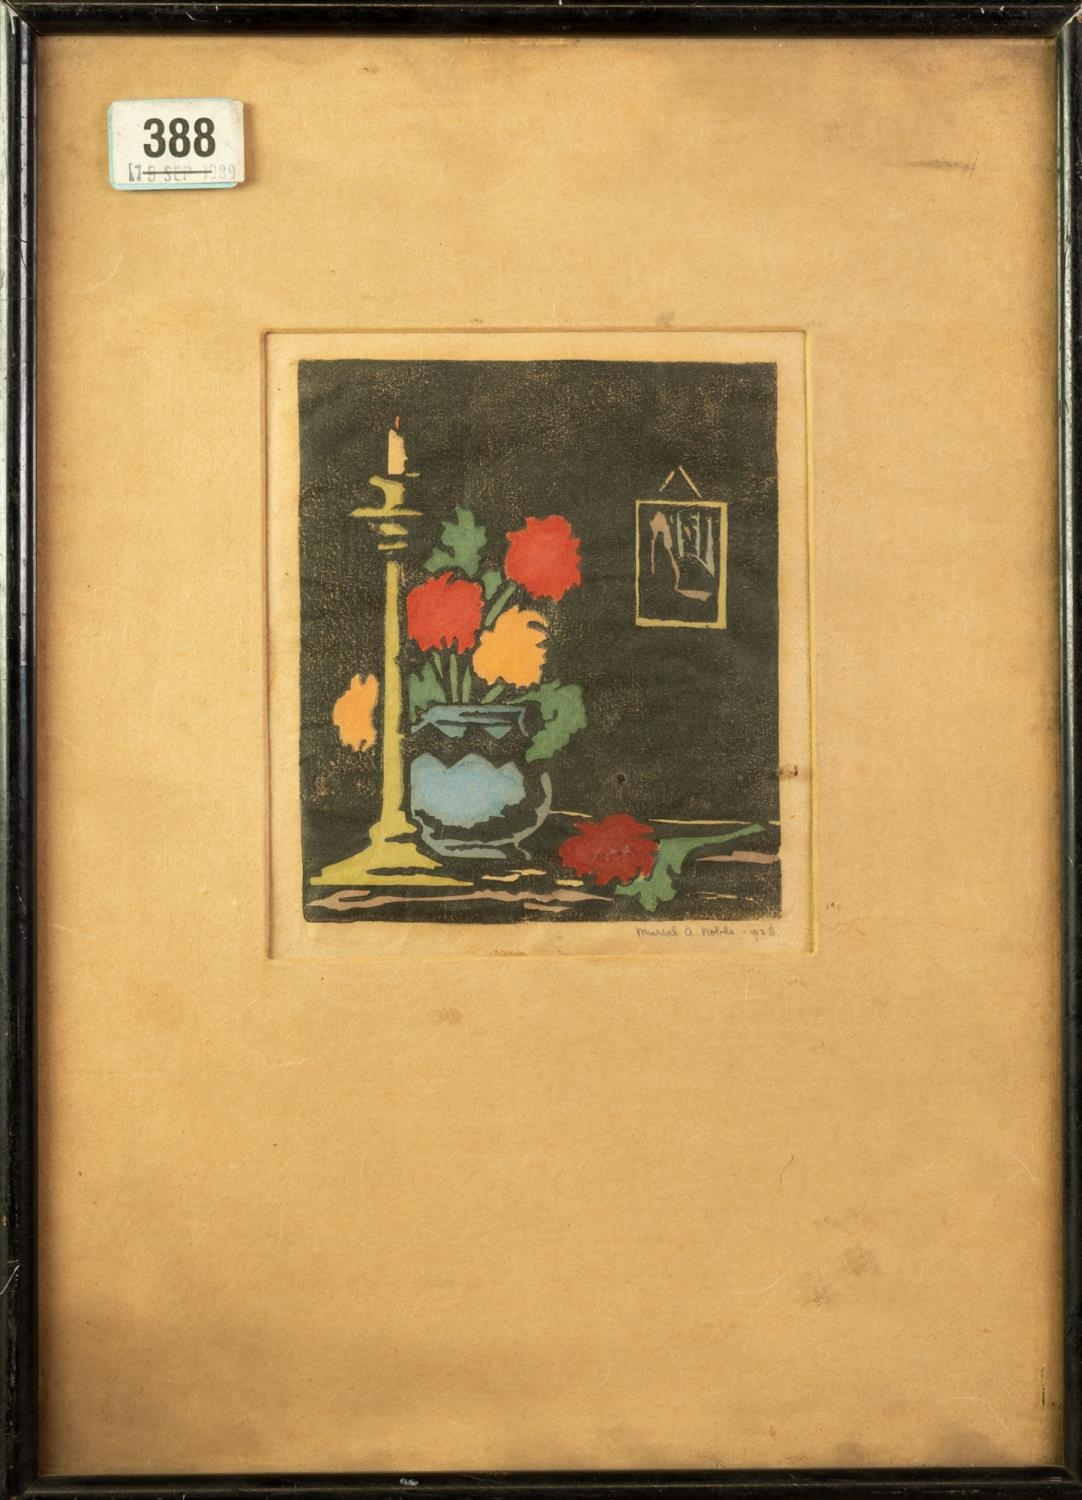 MURIAL A. NOBLE HAND COLOURED WOODBLOCK PRINT Still life with flowers in a vase Signed and dated - Image 2 of 2